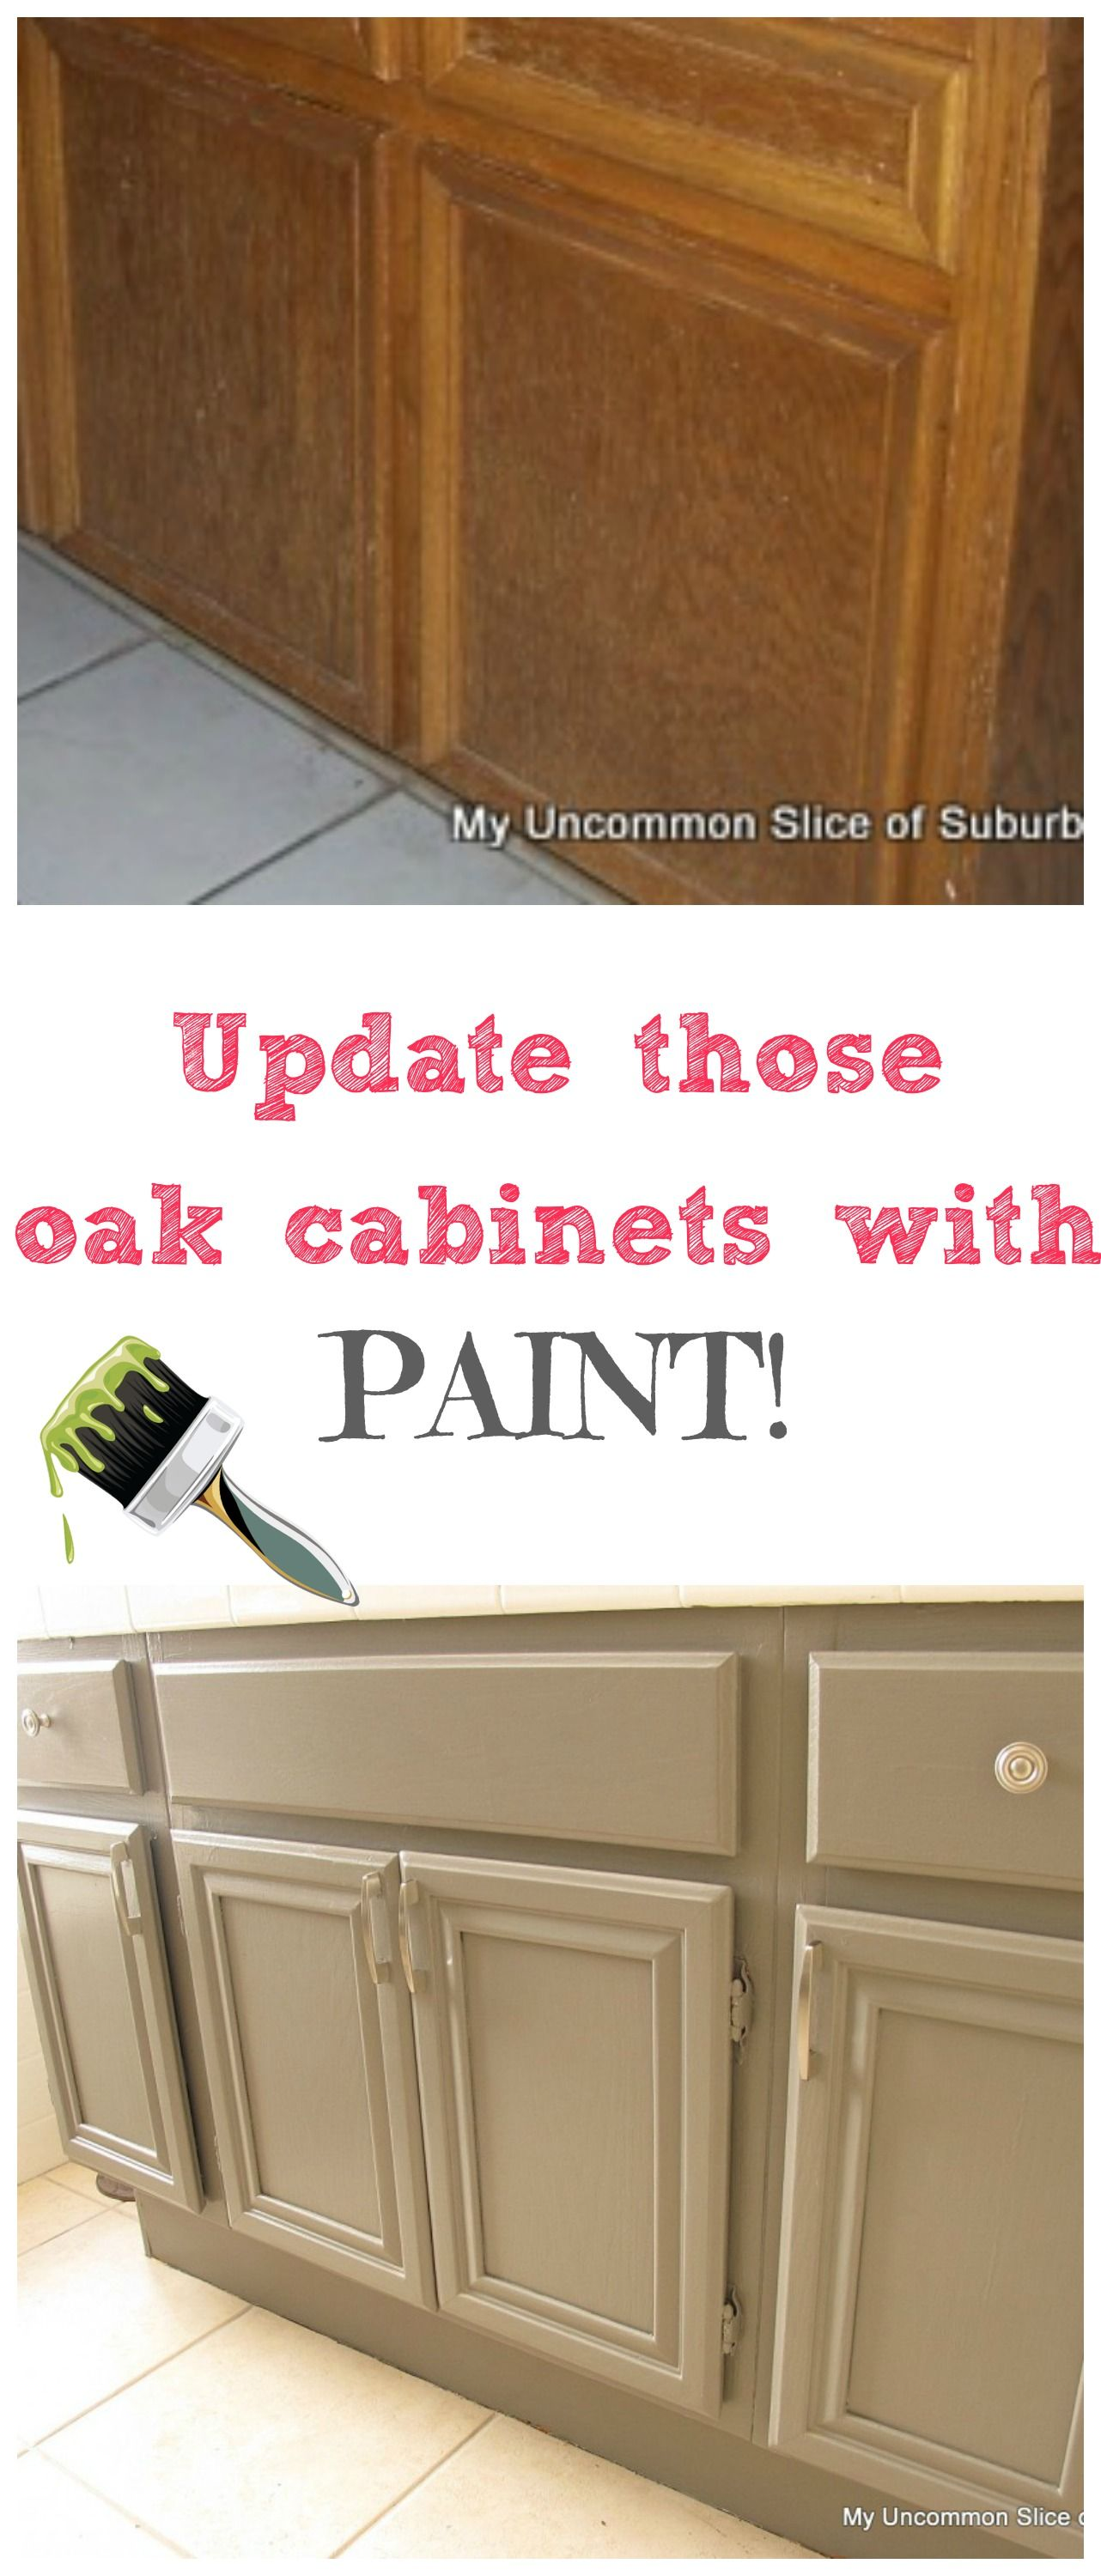 How to paint oak cabinets tutorials kitchens and house